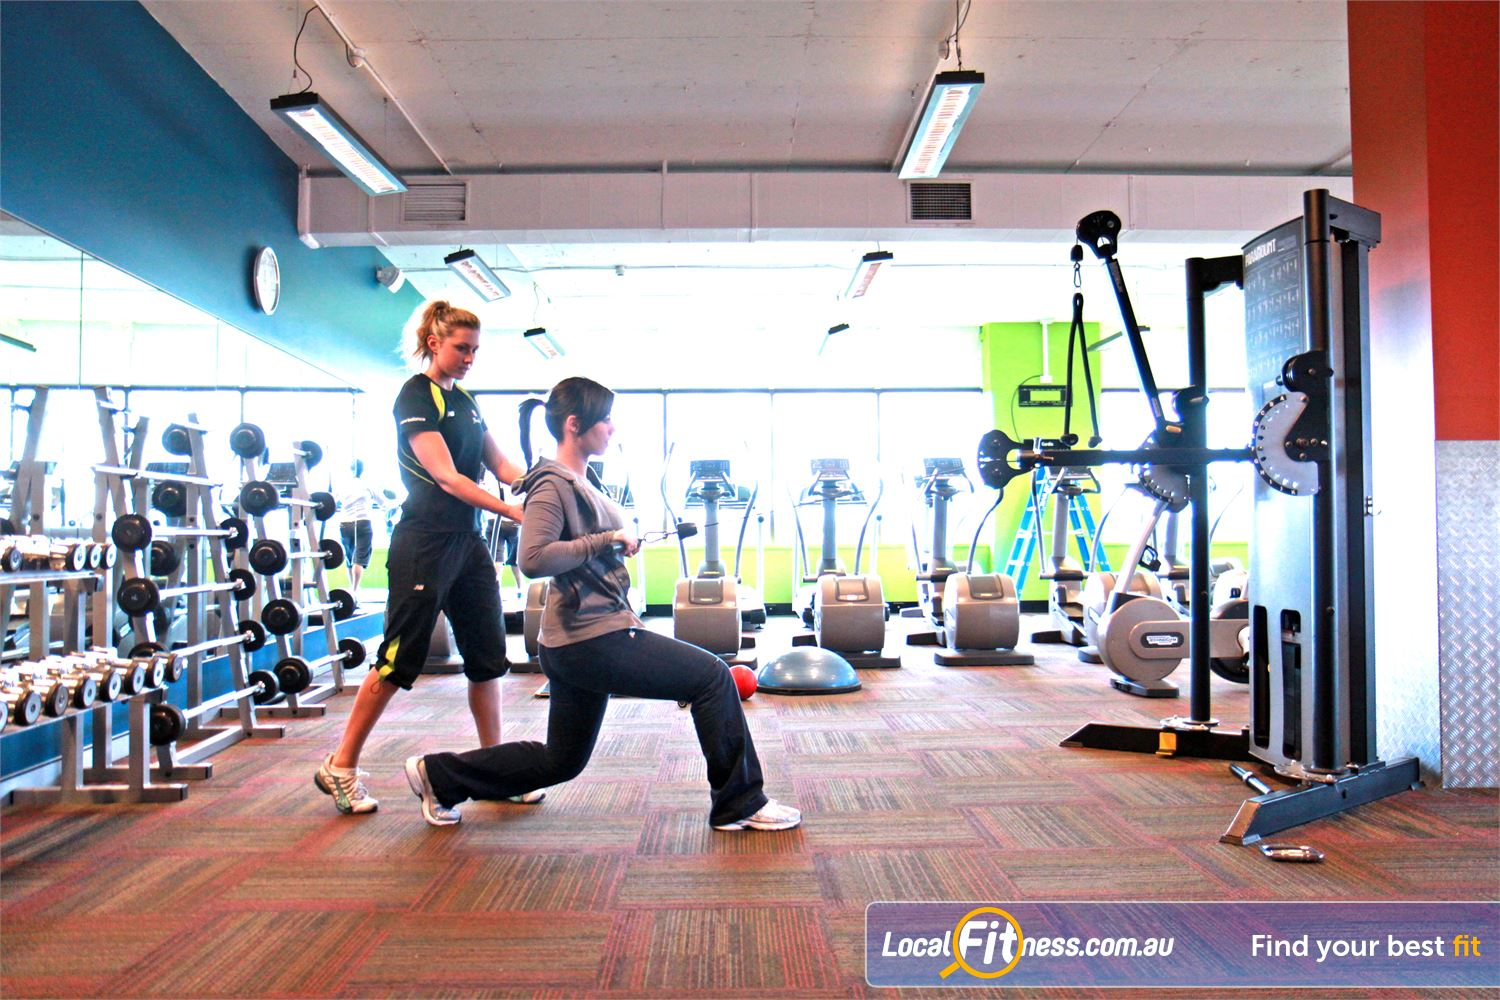 Goodlife Health Clubs Mount Gravatt Mt Gravatt personal trainers can on women's fitness and weight-loss goals.